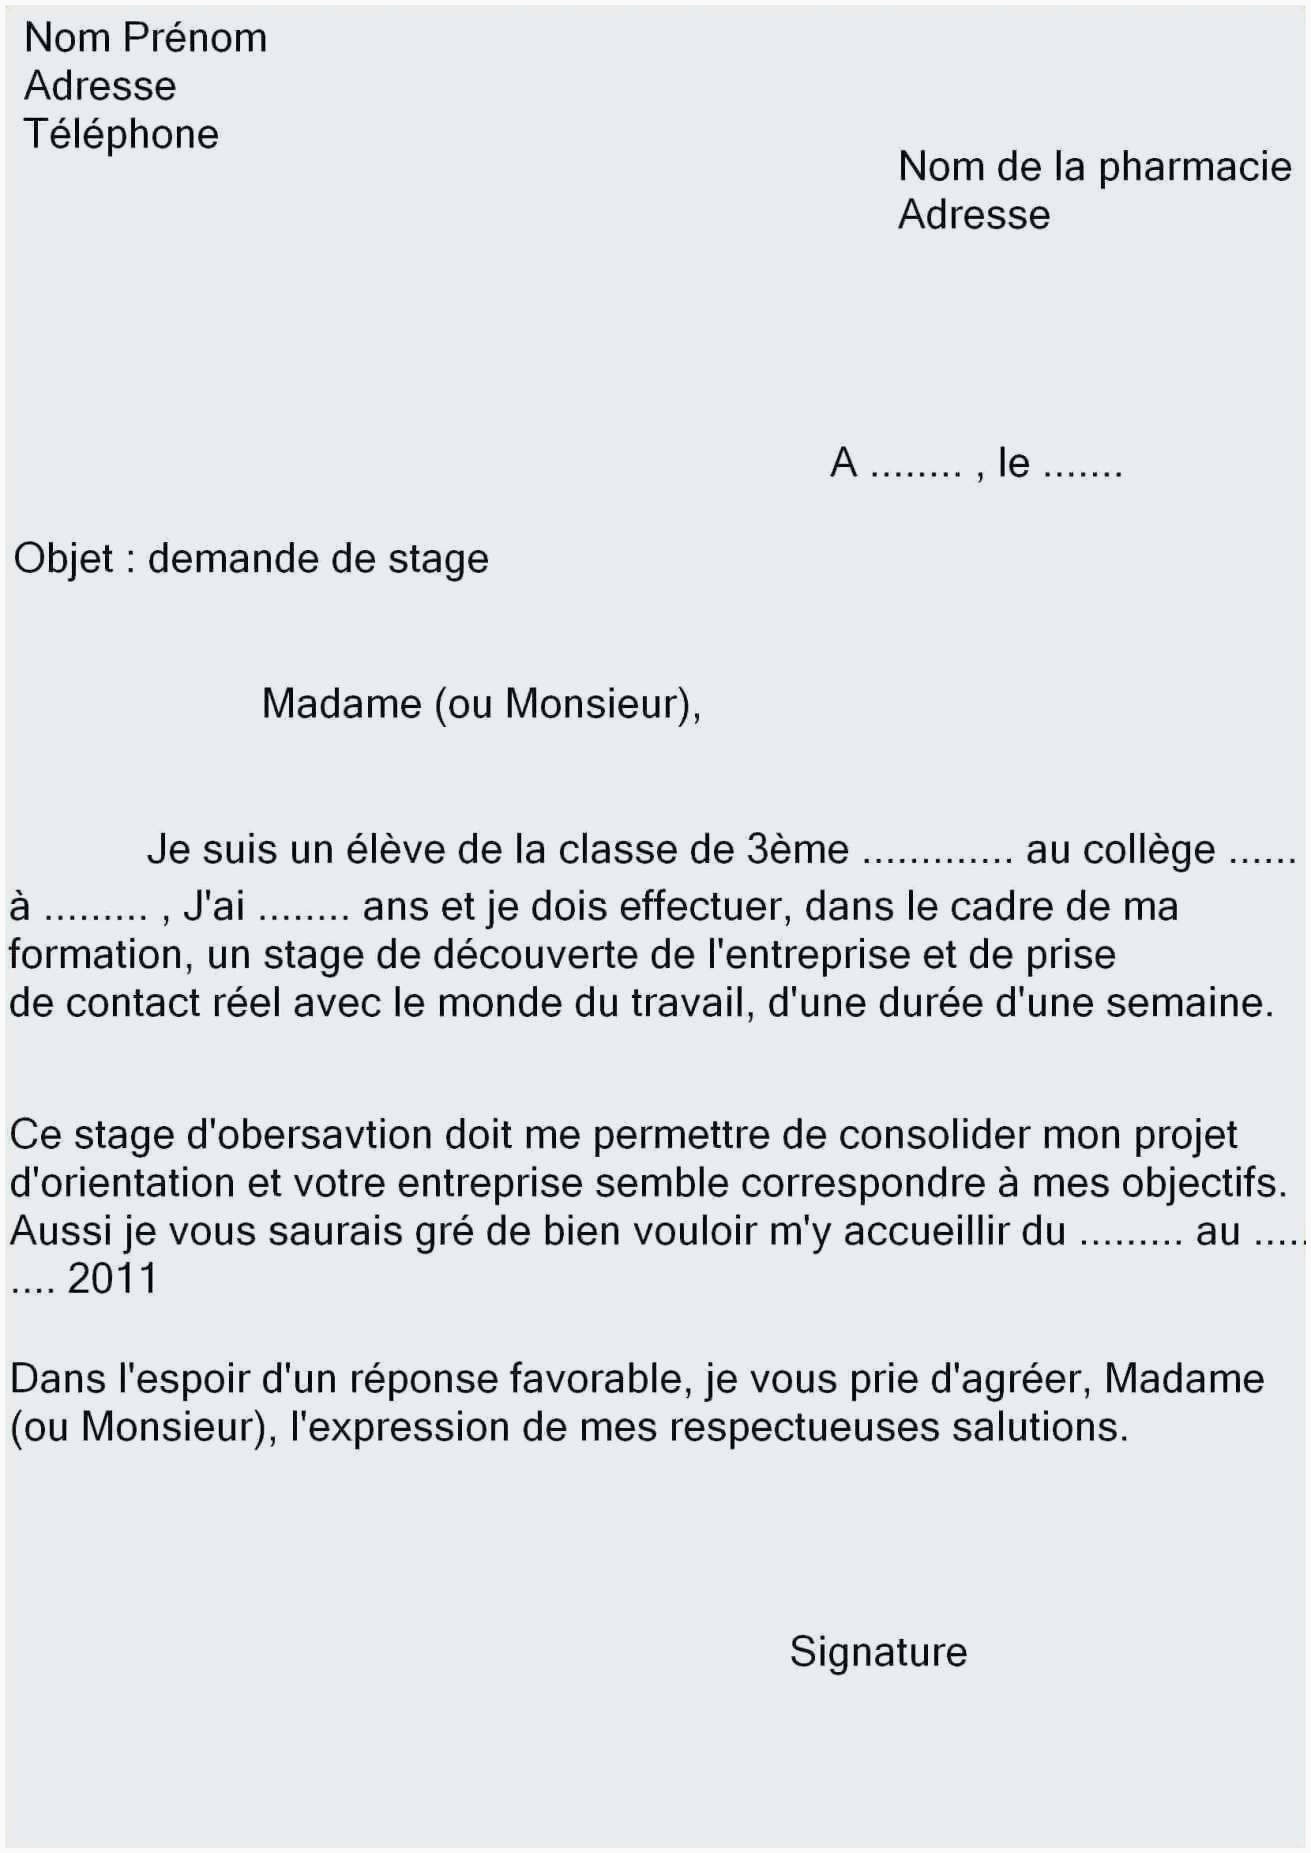 Lettre De Motivation Receptionniste Lettre De Motivation formation Cariste Nouveau Lettre De Motivation